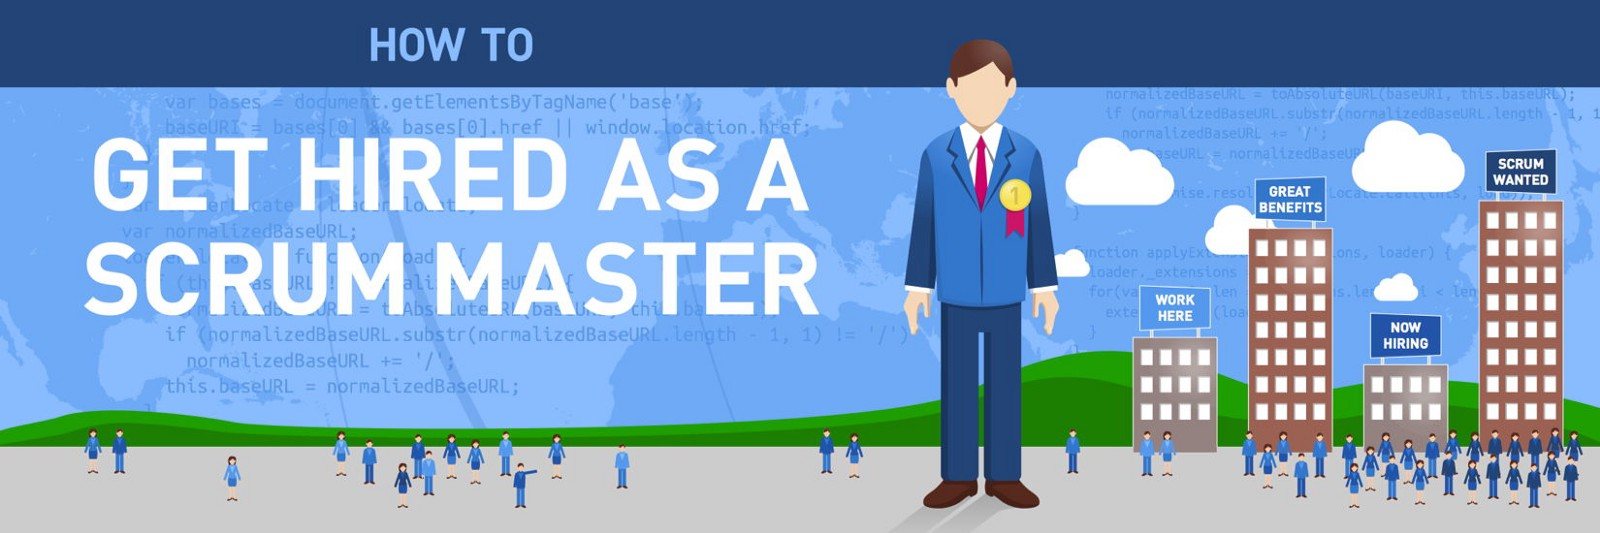 how to get hired as a scrum master